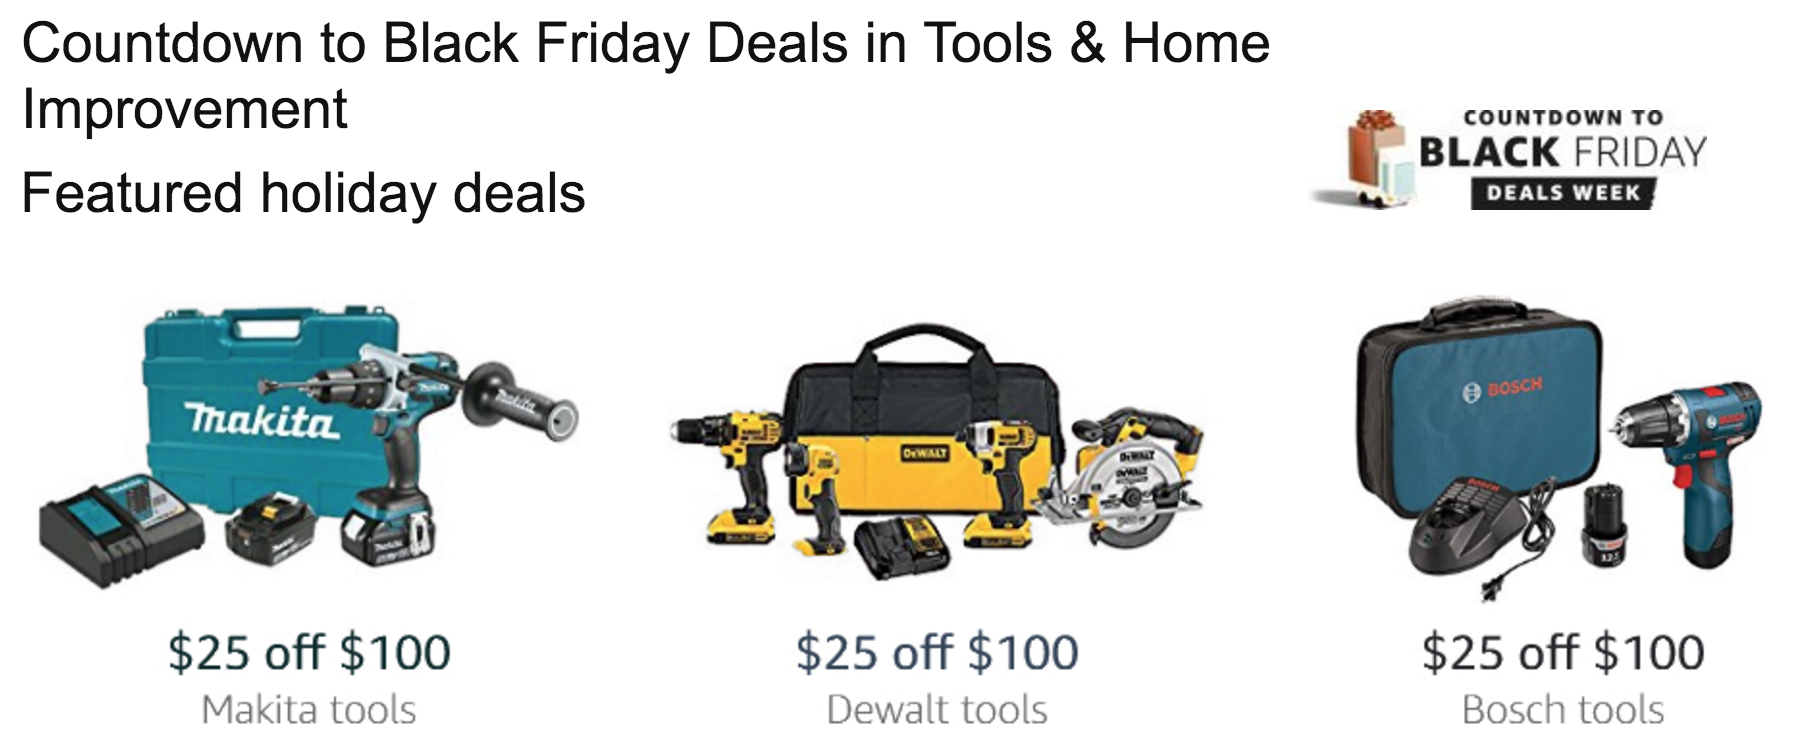 Save 25 Off 100 On Dewalt Bosch And Makita Tools At Amazon 2 Piece Combo Kit 165 Compact Drill 103 More 9to5toys